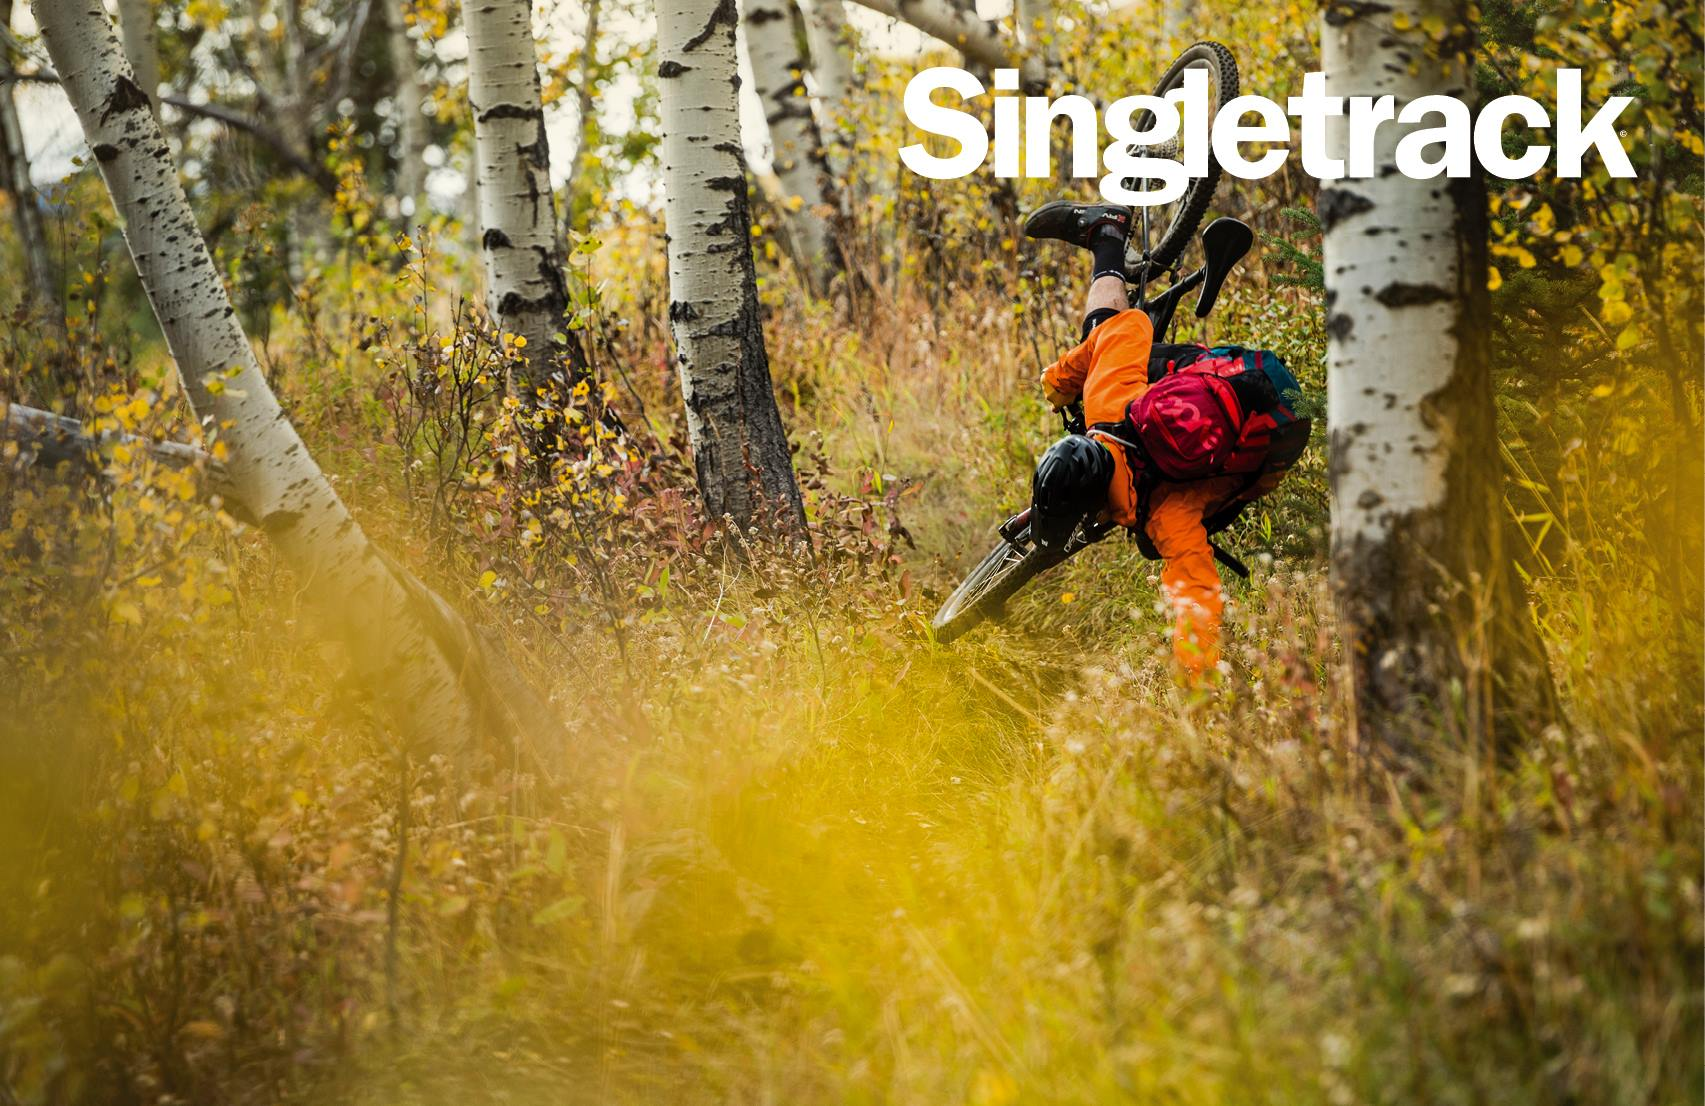 singletrack issue 106 cover Mattias Fredriksson